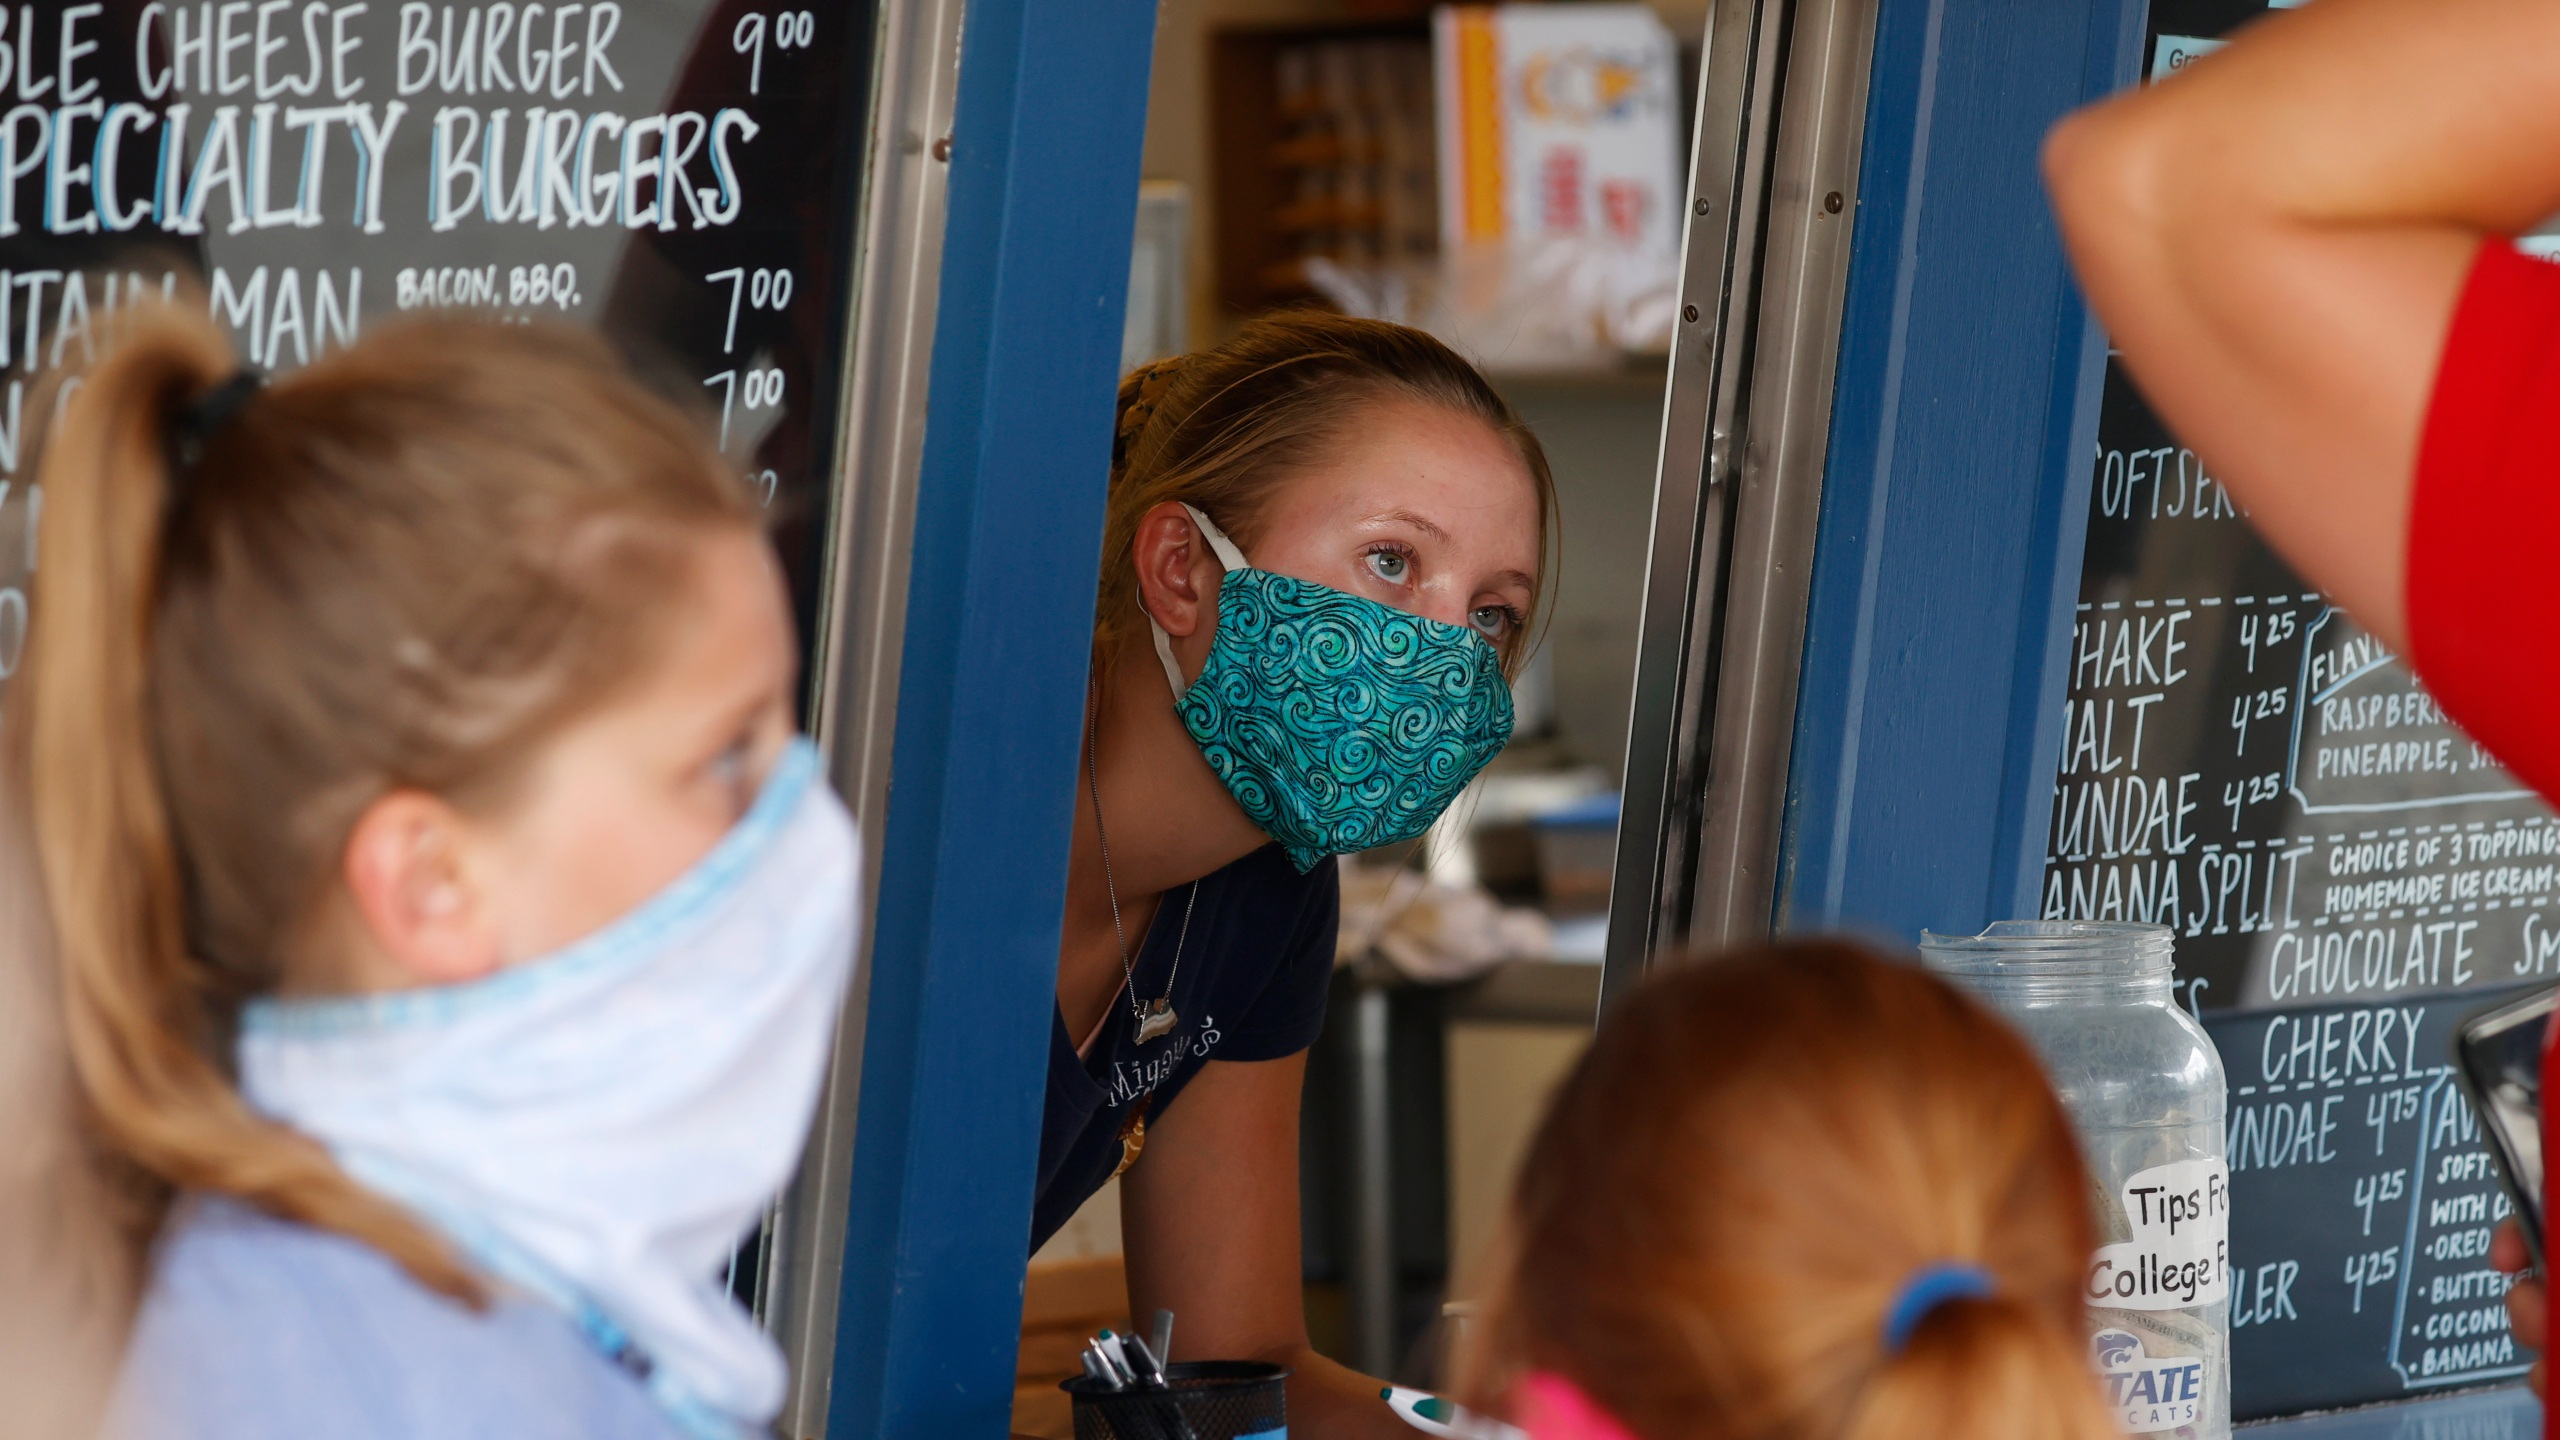 In this Aug. 4, 2020 file photo, a staffer wears a mask while taking orders at a small restaurant in Grand Lake, Colo., amid the coronavirus pandemic. (AP Photo/David Zalubowski, File)